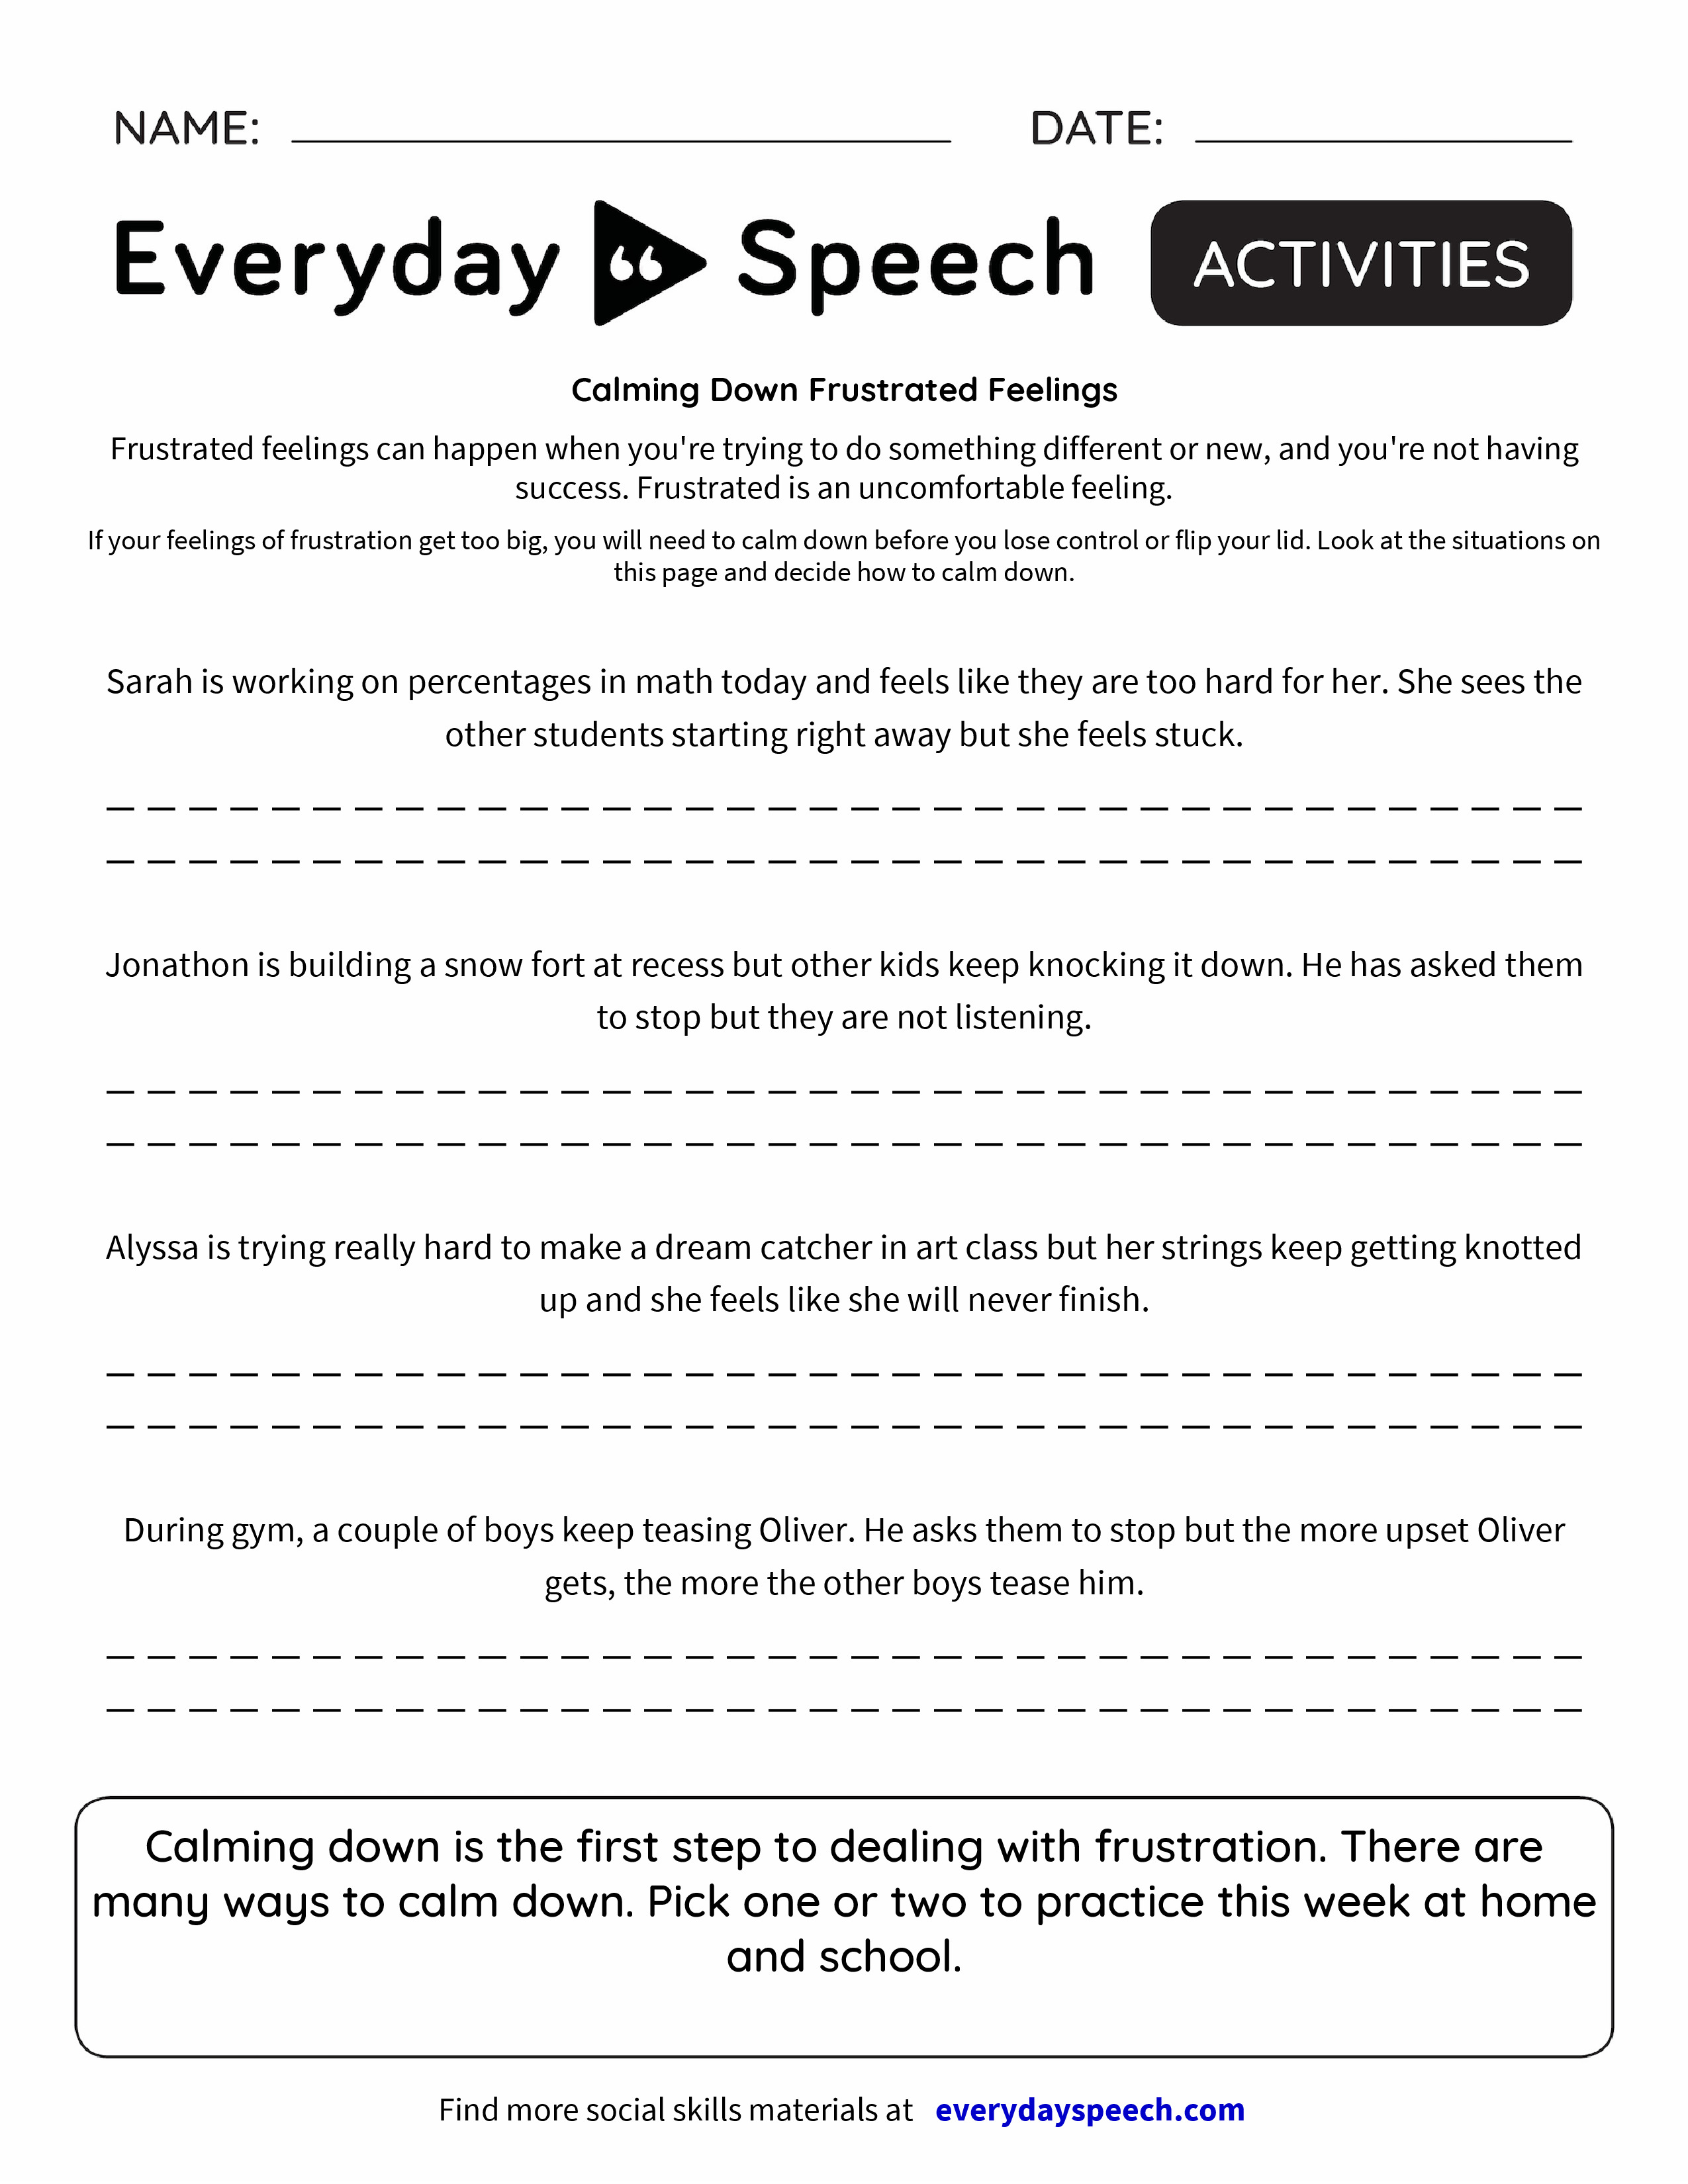 worksheet Your And You Re Worksheet calming down frustrated feelings everyday speech preview